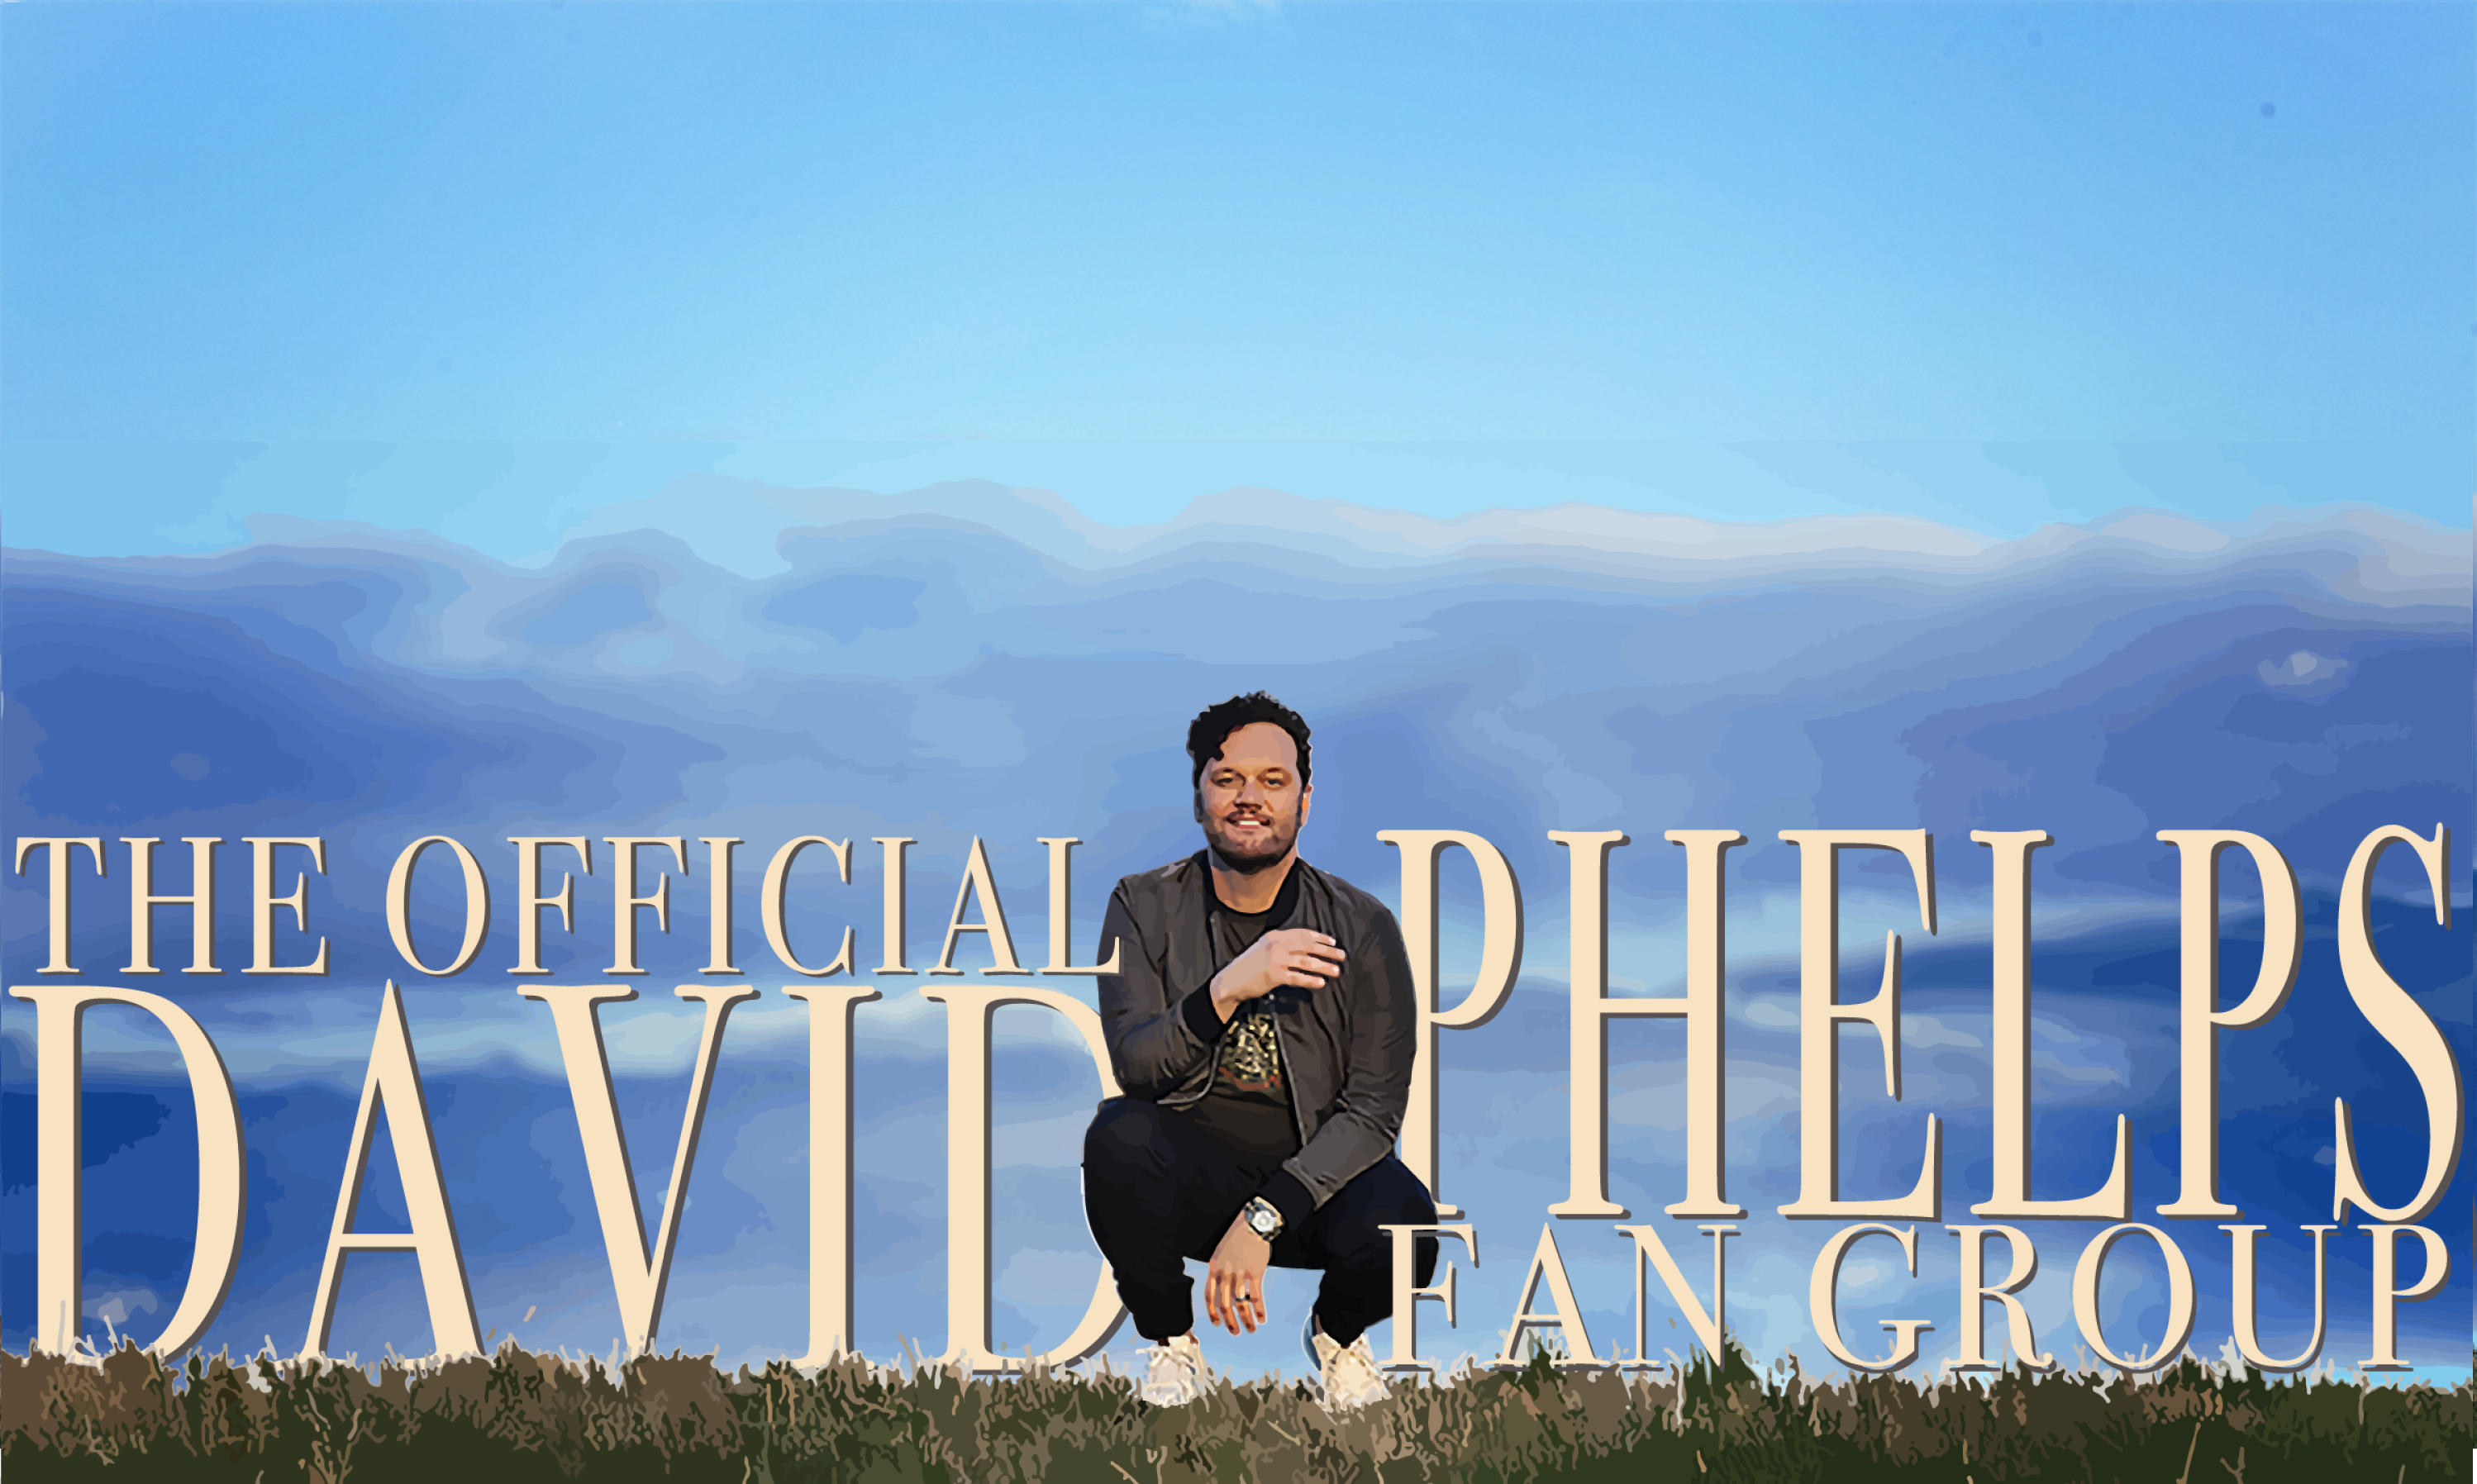 The Official David Phelps Fan Group!